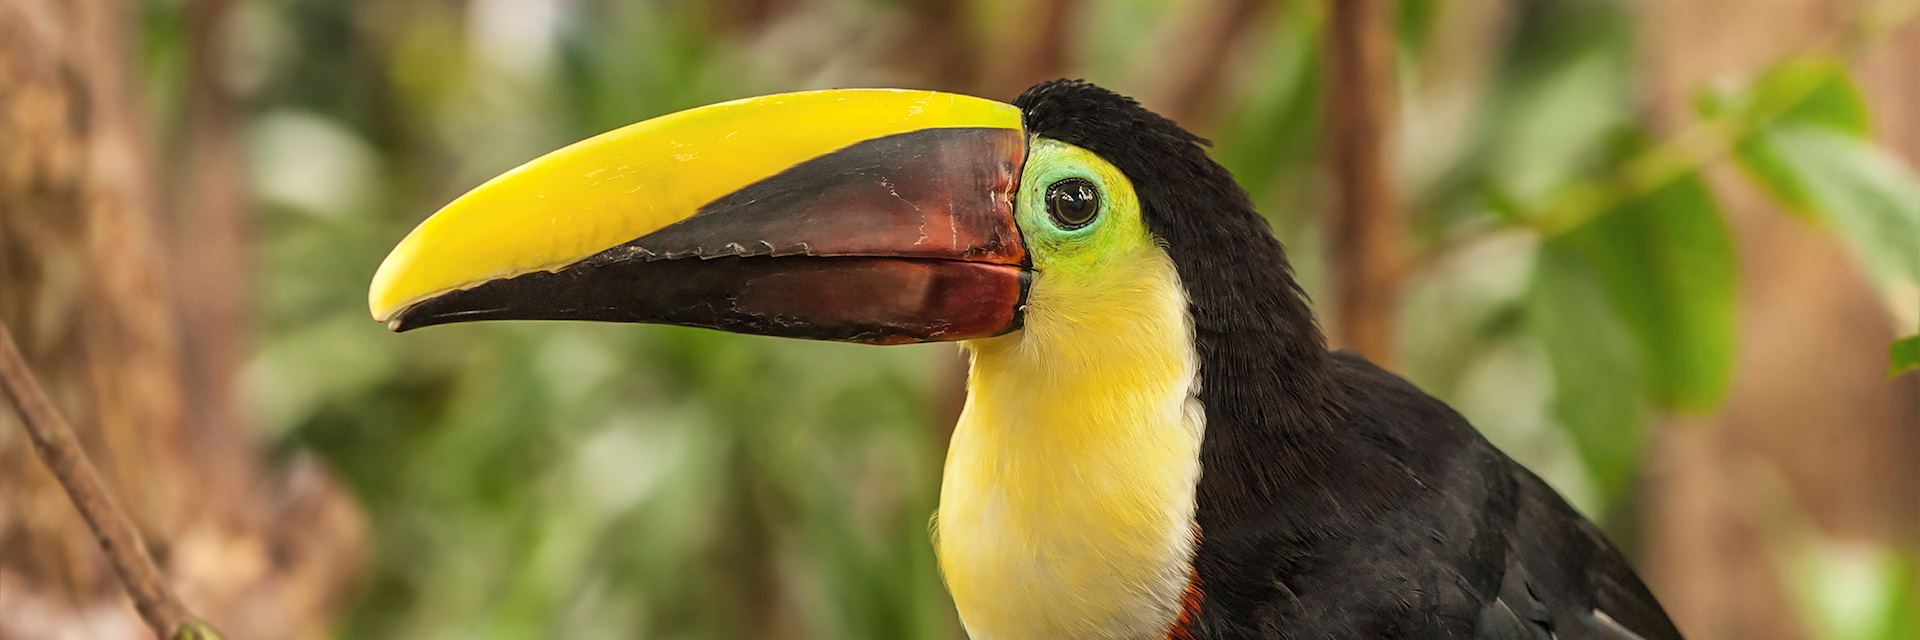 Chestnut Mandibled Toucan, Costa Rica